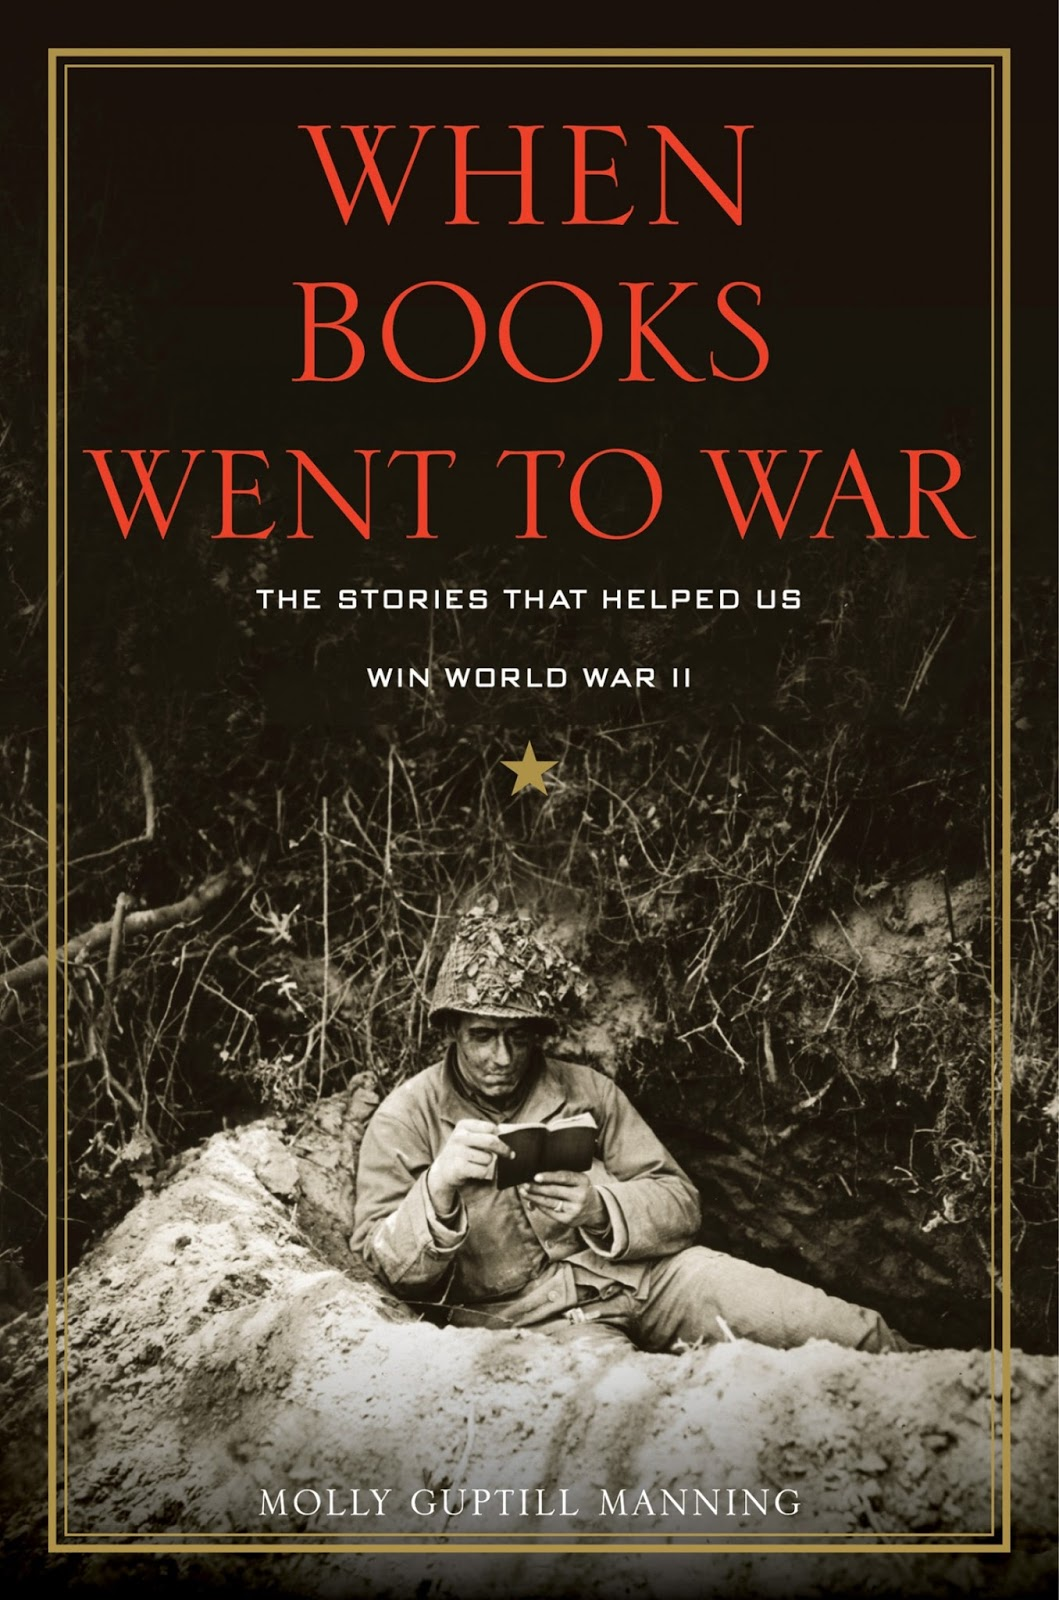 Howling Frog Books: When Books Went to War